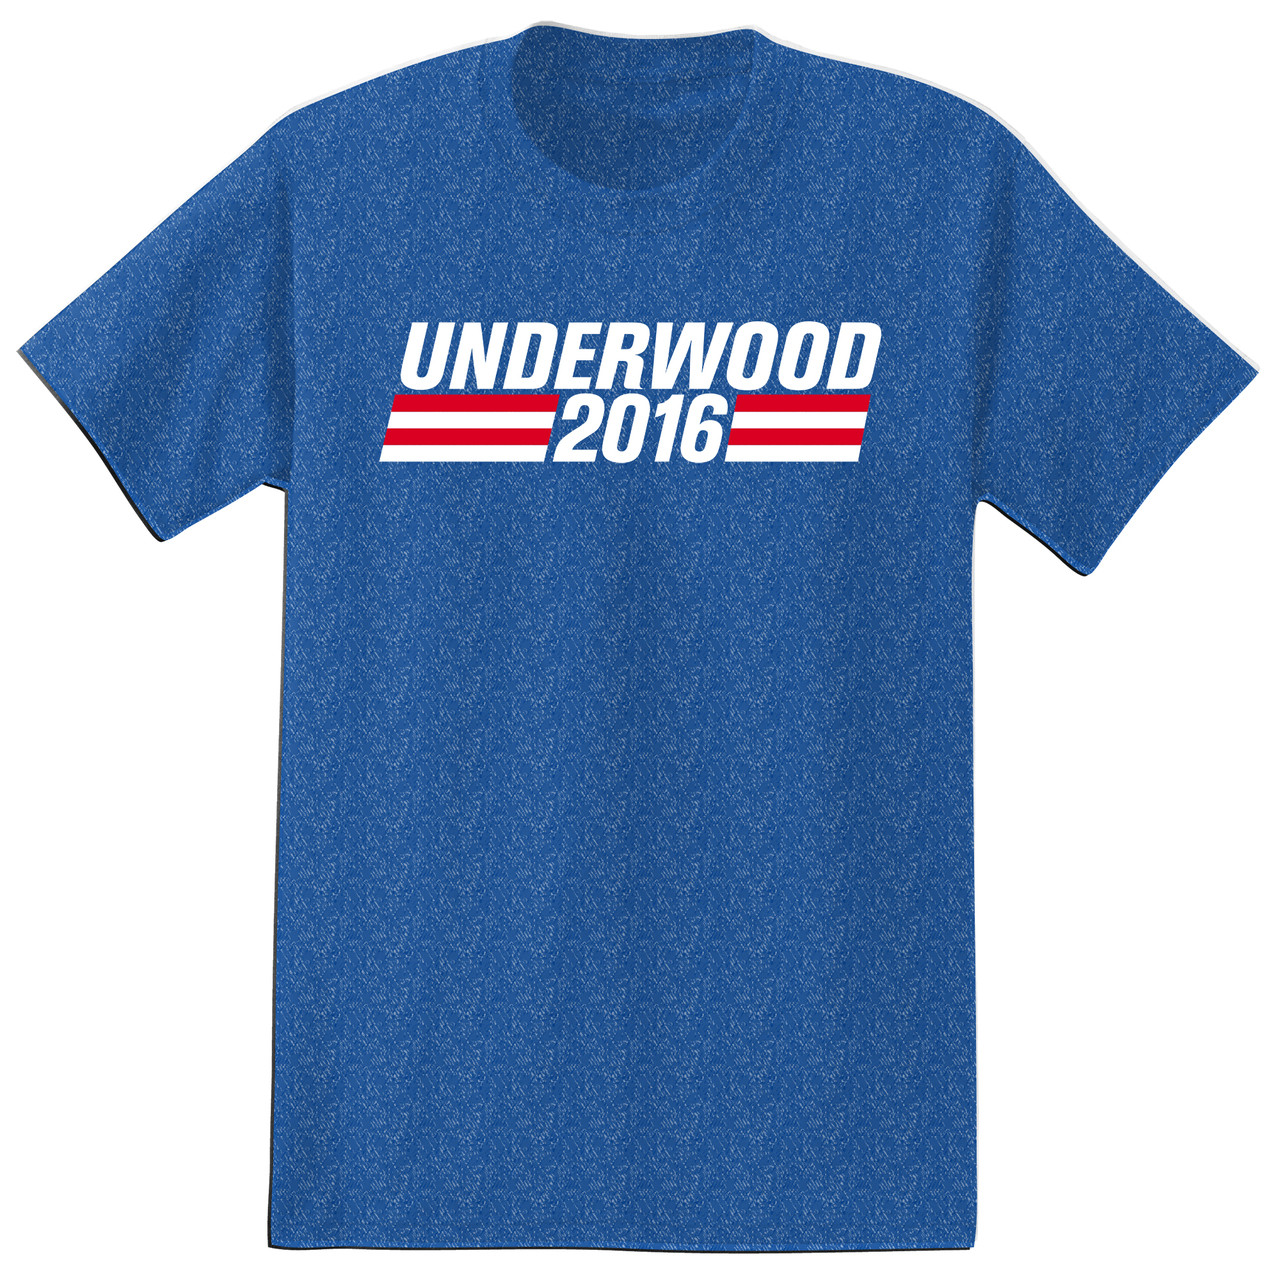 Underwood 2016 House of Cards T-Shirt all Sizes New